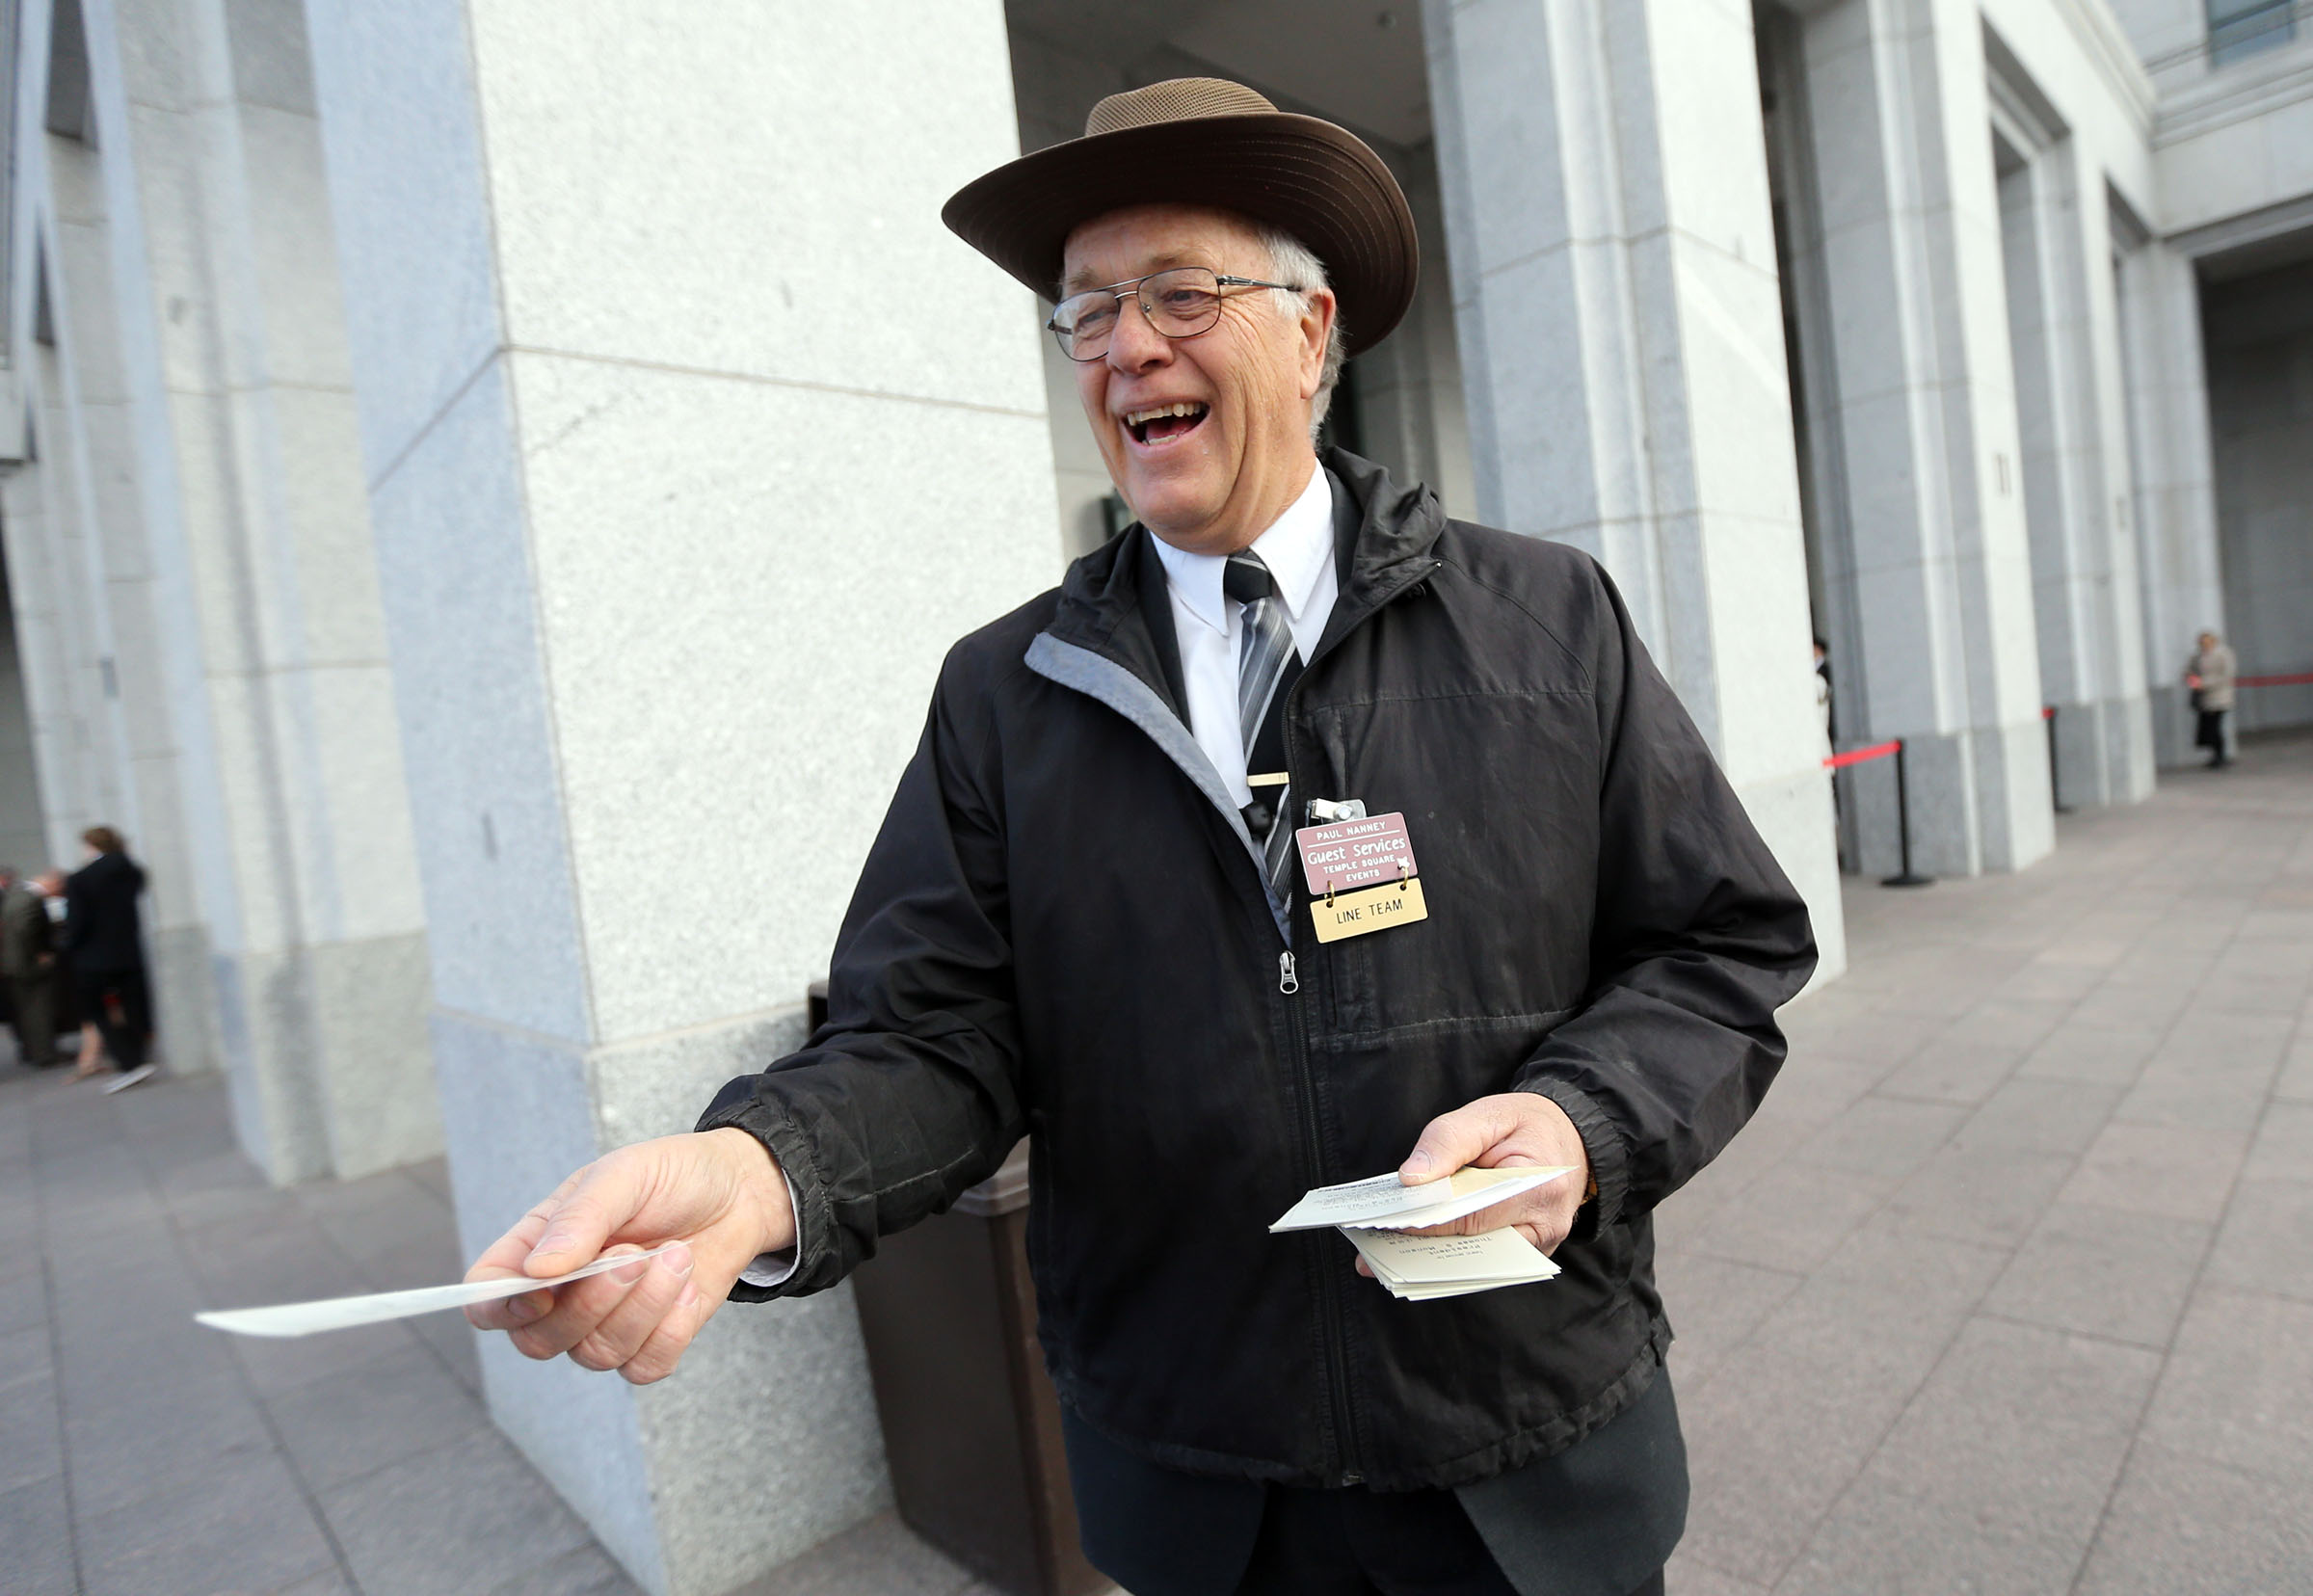 Paul Nanney hands out tickets outside of the Conference Center for President Thomas S. Monson's funeral in Salt Lake City on Friday, Jan. 12, 2018.